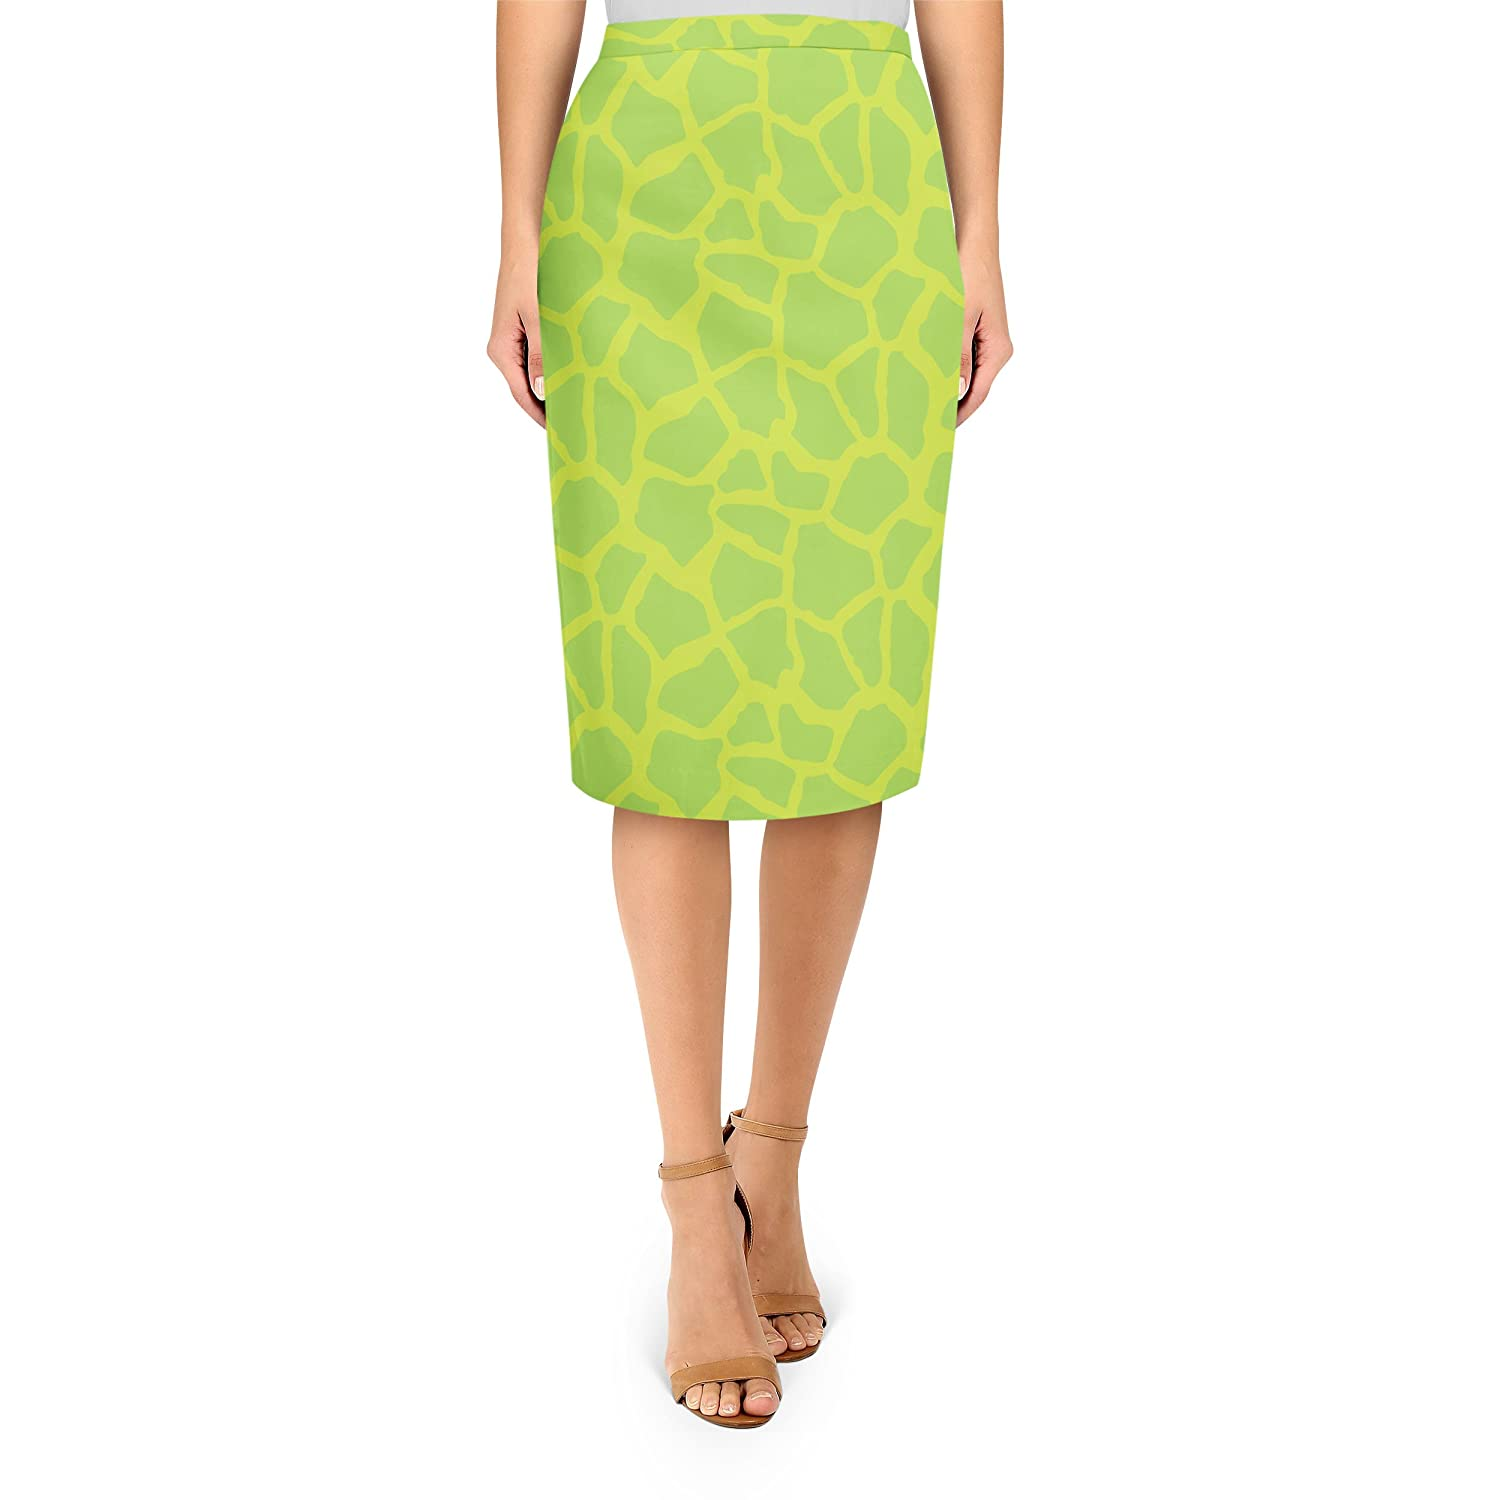 Giraffe Print Bright Green Midi Pencil Skirt